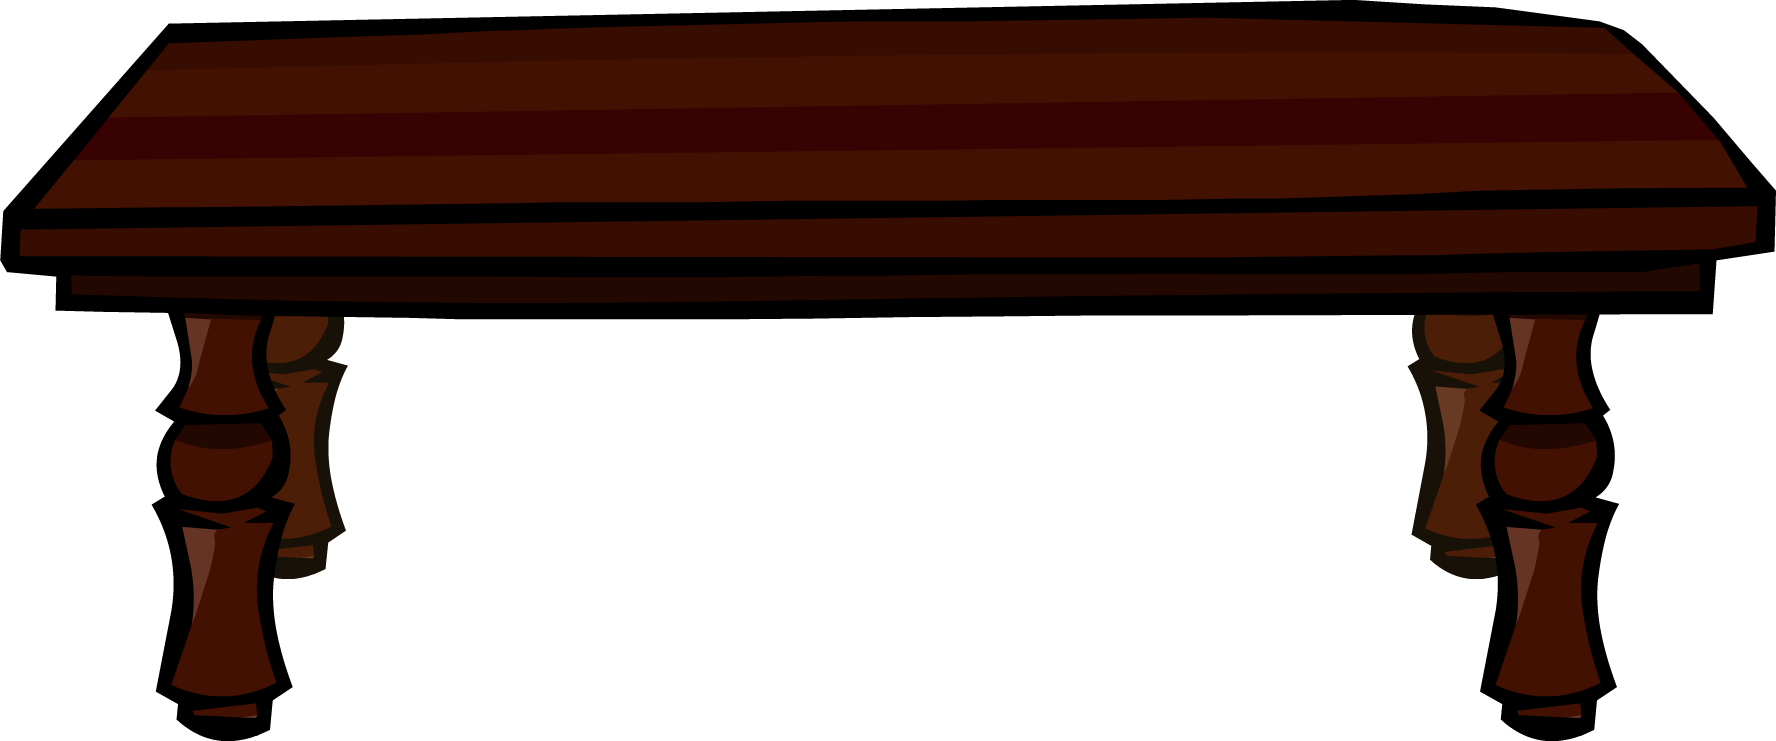 Dinner table png. Image rosewood club penguin png black and white library